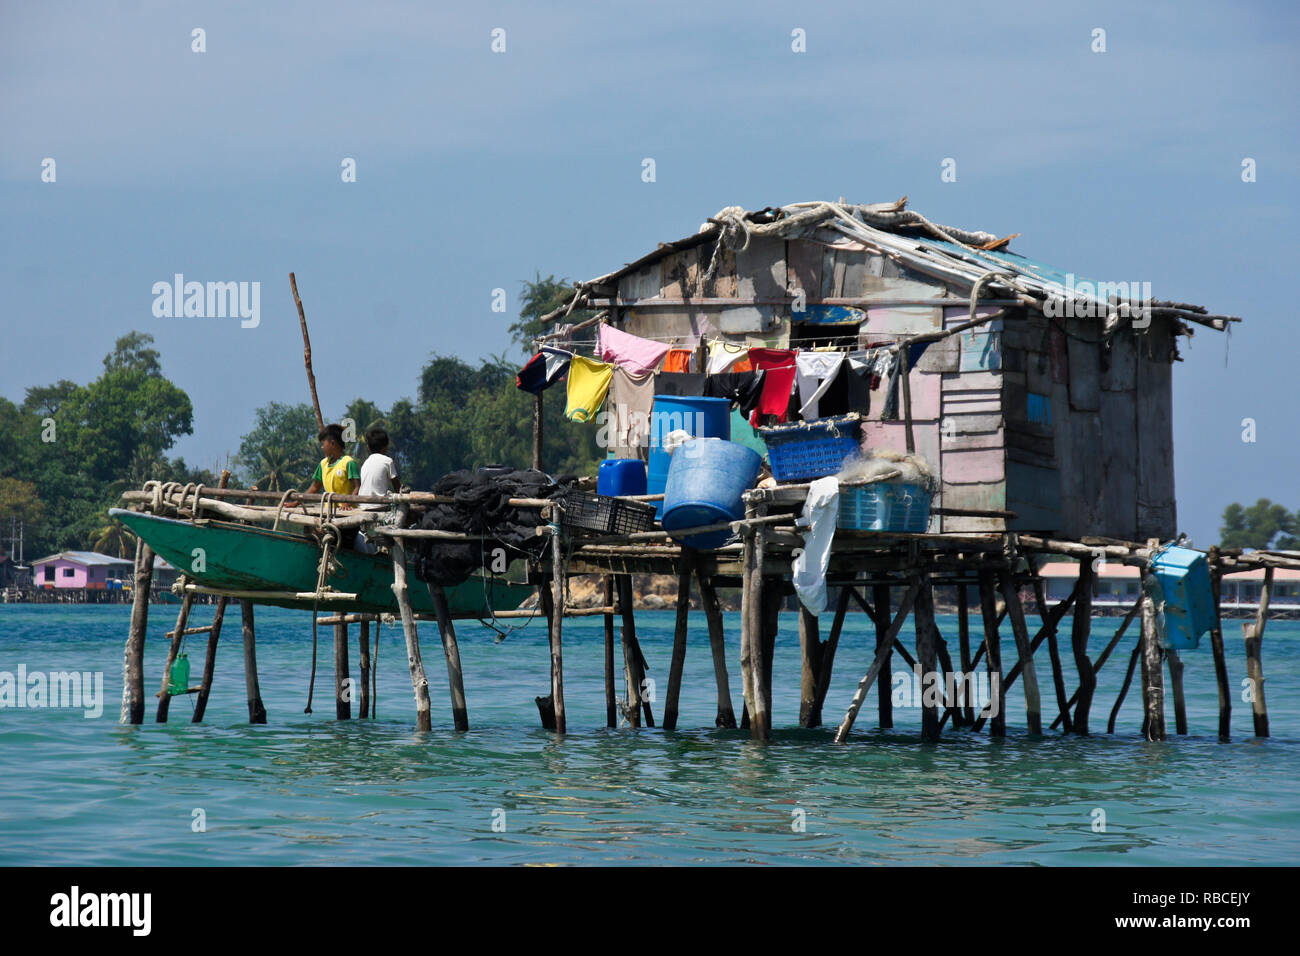 Dwelling built on stilts in South China Sea near Kota Kinabalu, Sabah (Borneo), Malaysia - Stock Image